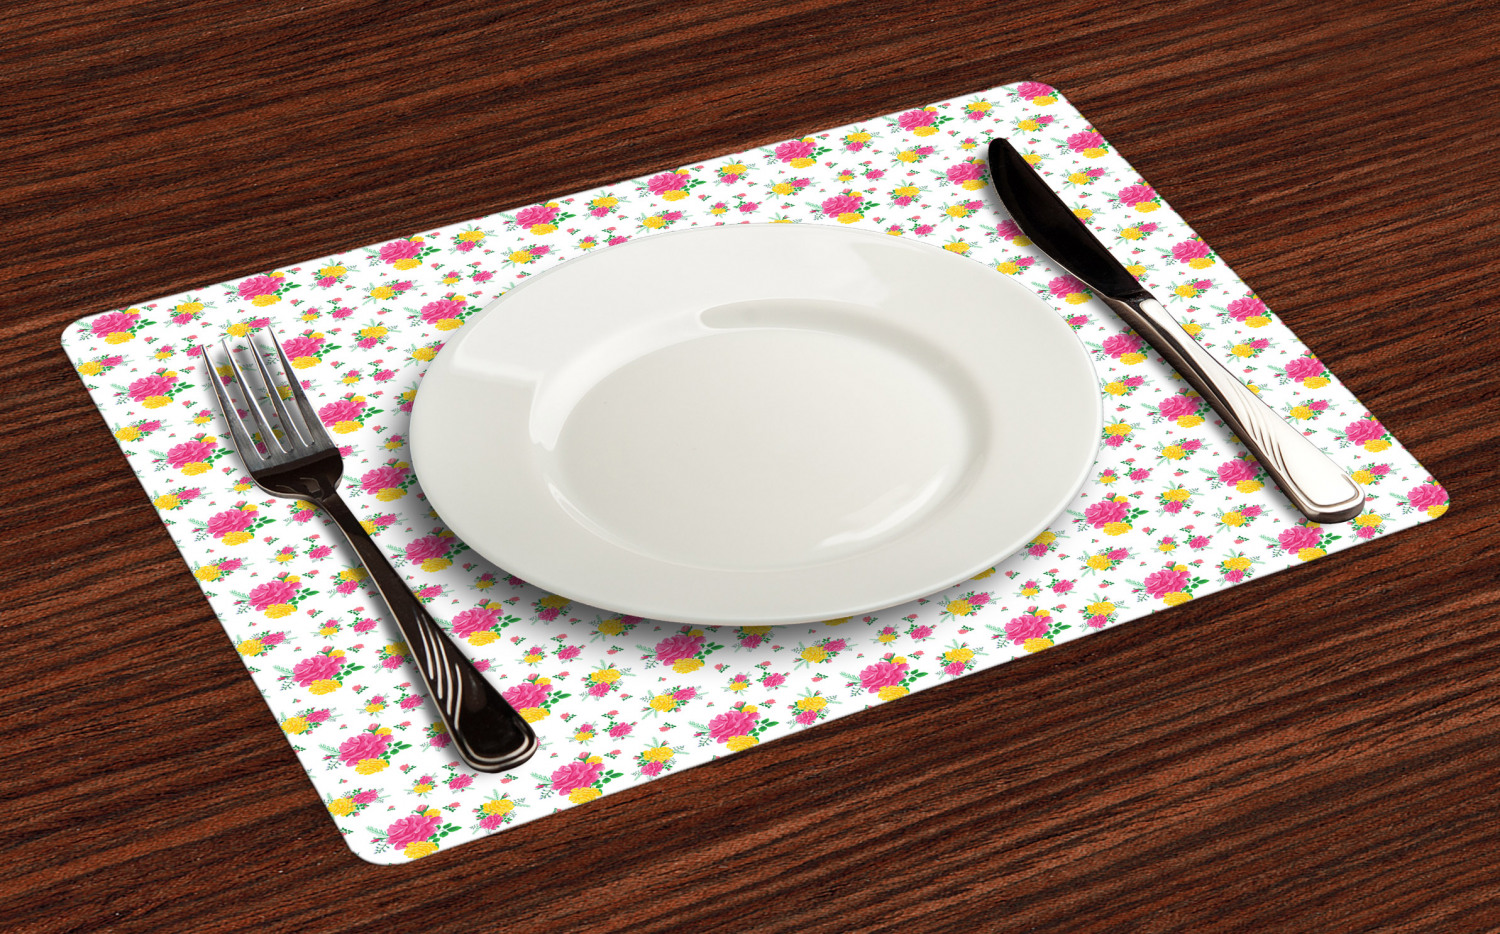 Ambesonne-Flower-Pattern-Placemat-Set-of-4-Fabric-Place-Mats-for-Table-Decor thumbnail 145